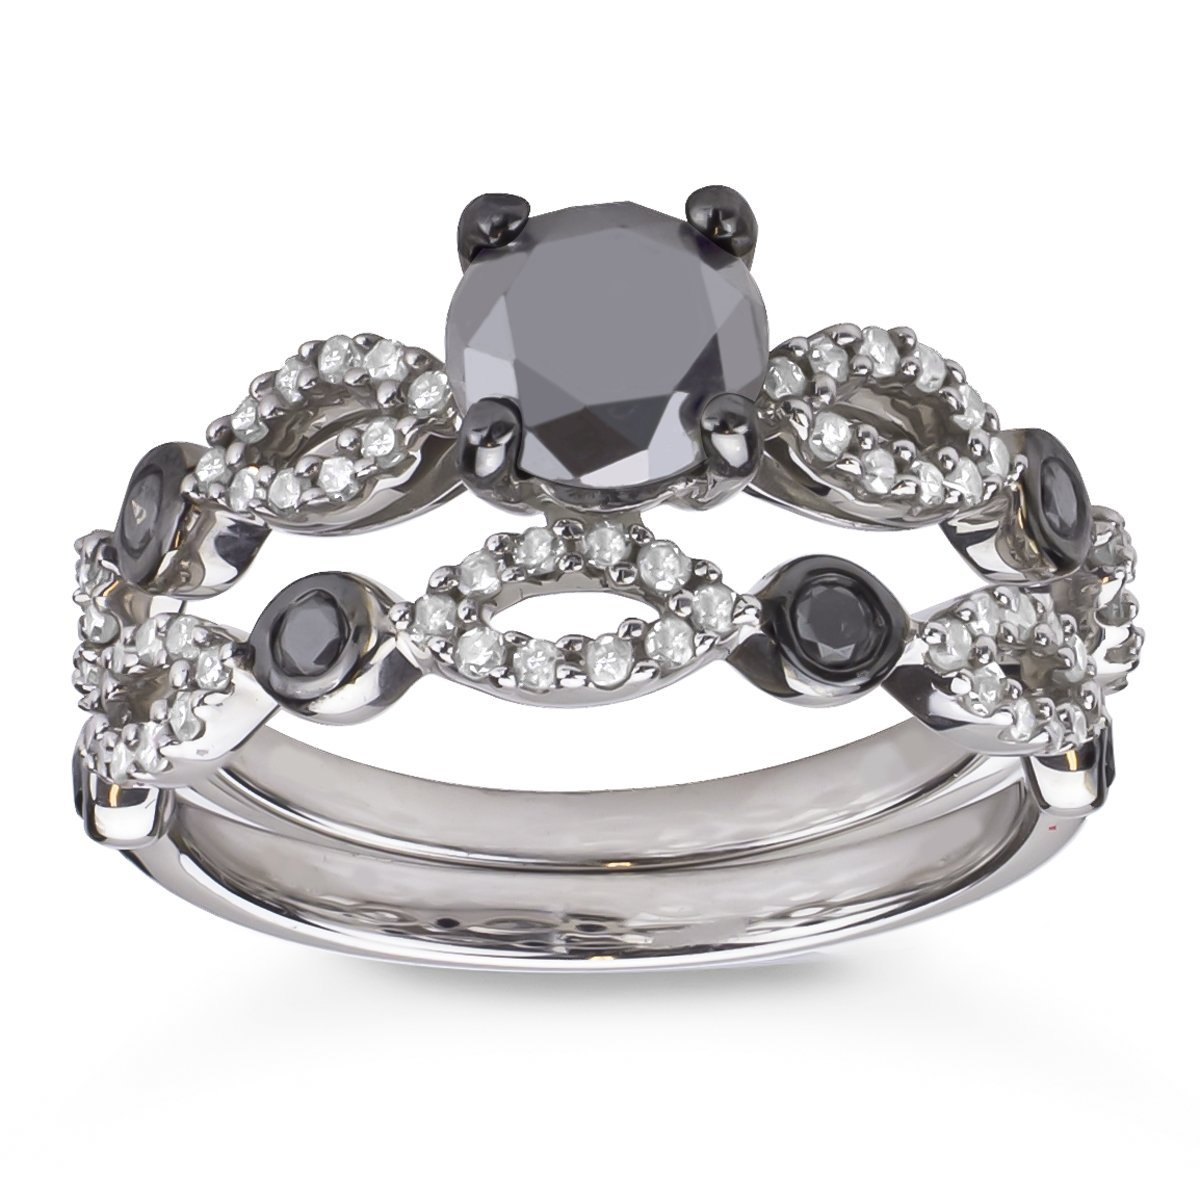 Sterling Silver 1 1/2CTTW TDW Black and White Diamond Bridal Ring Set